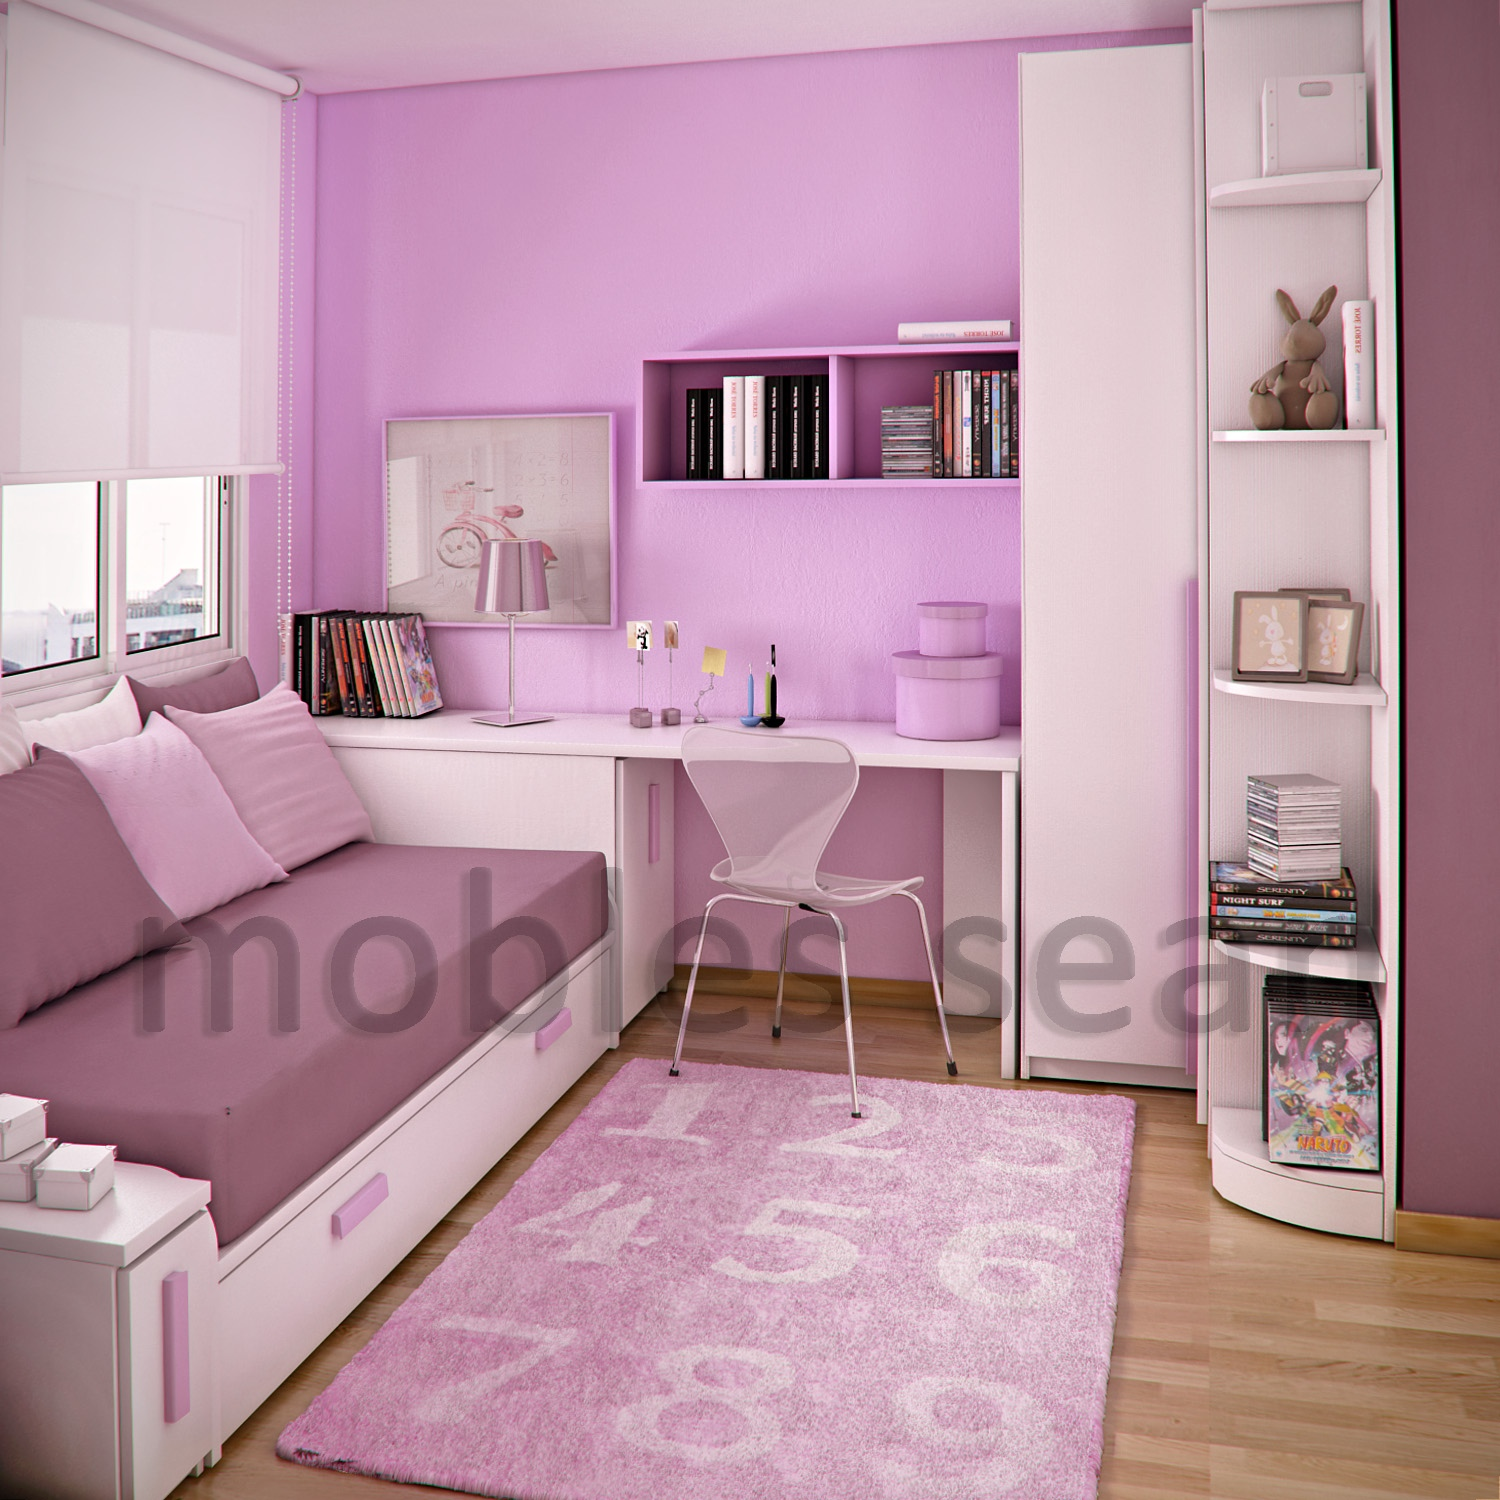 Space saving designs for small kids rooms - Small girls bedroom decor ...